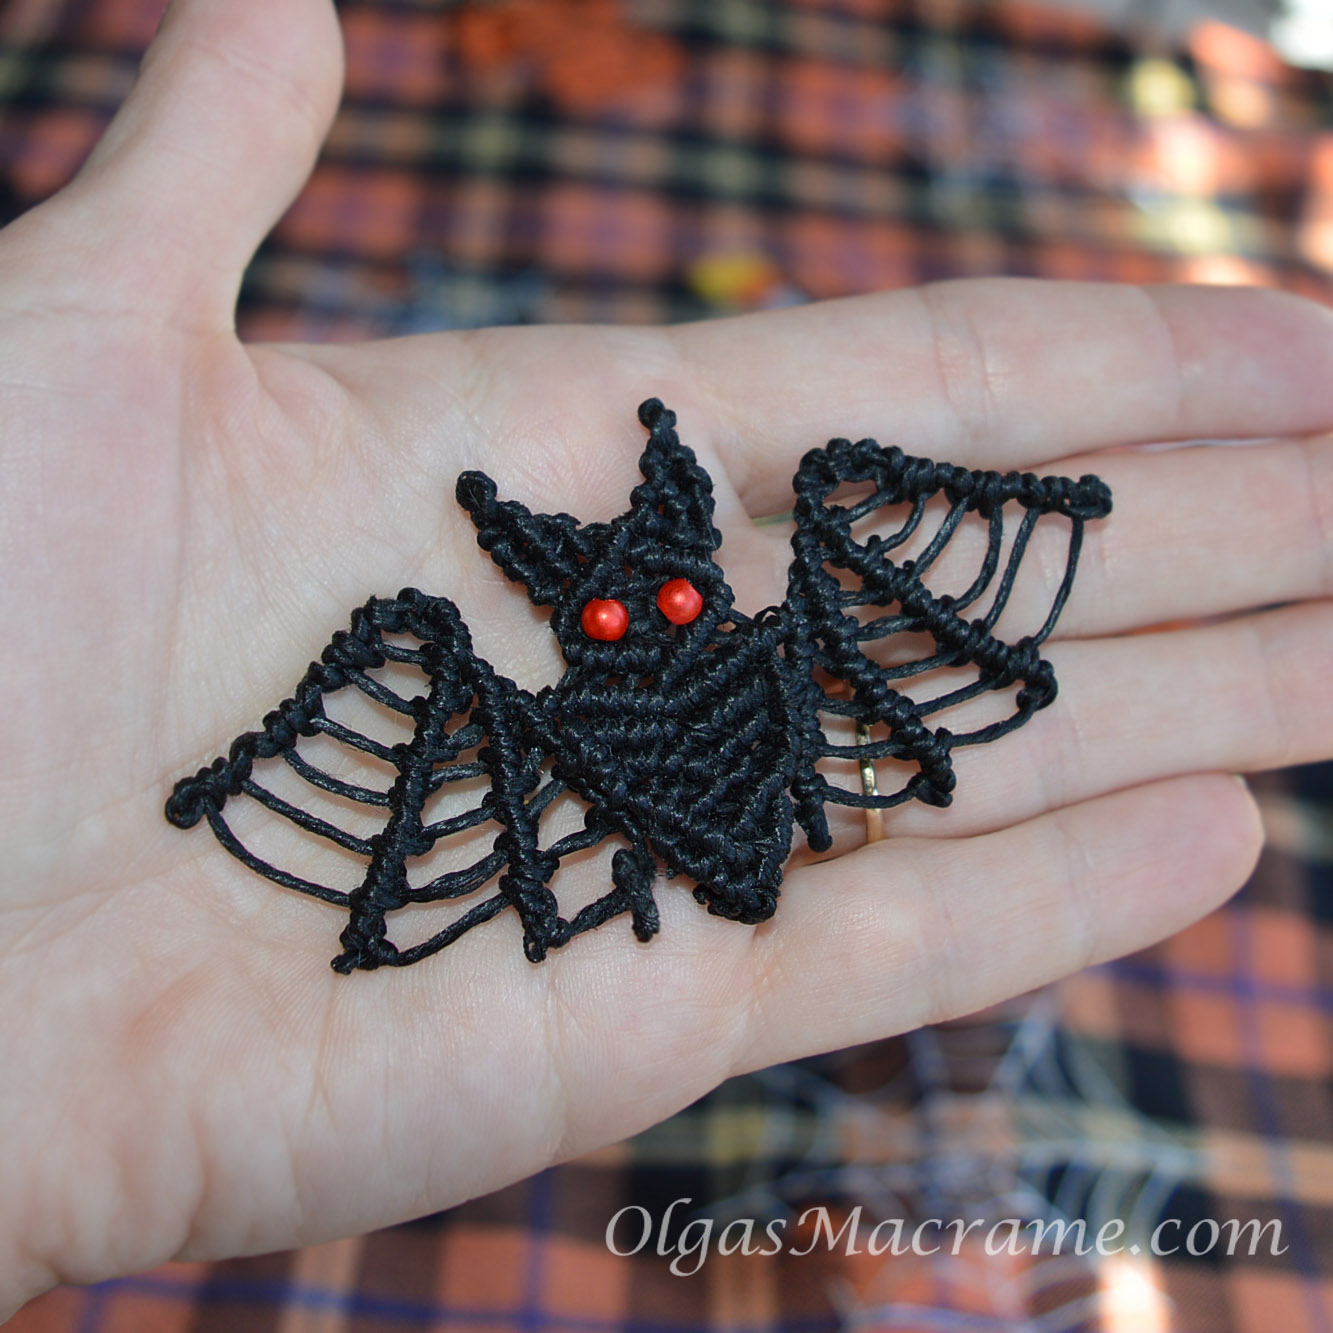 Macrame Halloween Bat tutorial